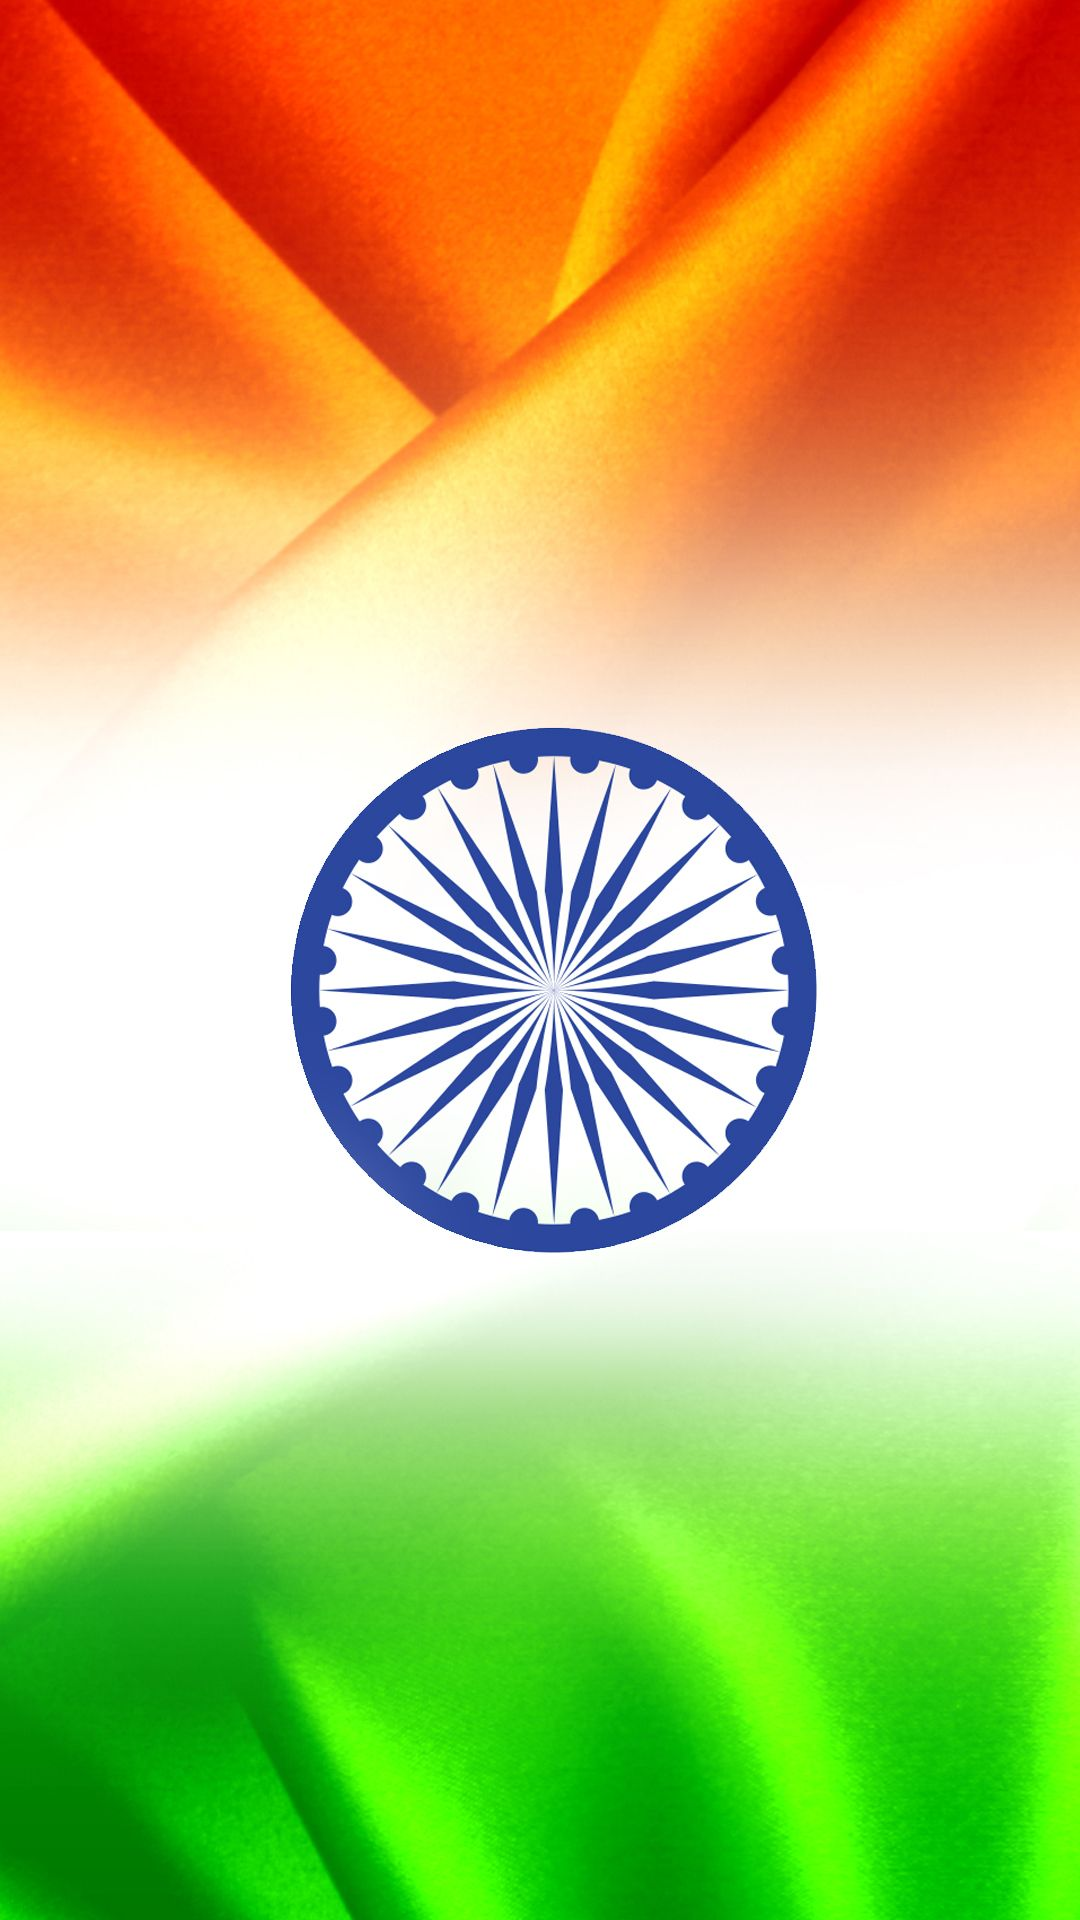 India Flag For Mobile Phone Wallpaper 11 Of 17 Tricolour - Indian Flag Wallpaper Hd , HD Wallpaper & Backgrounds